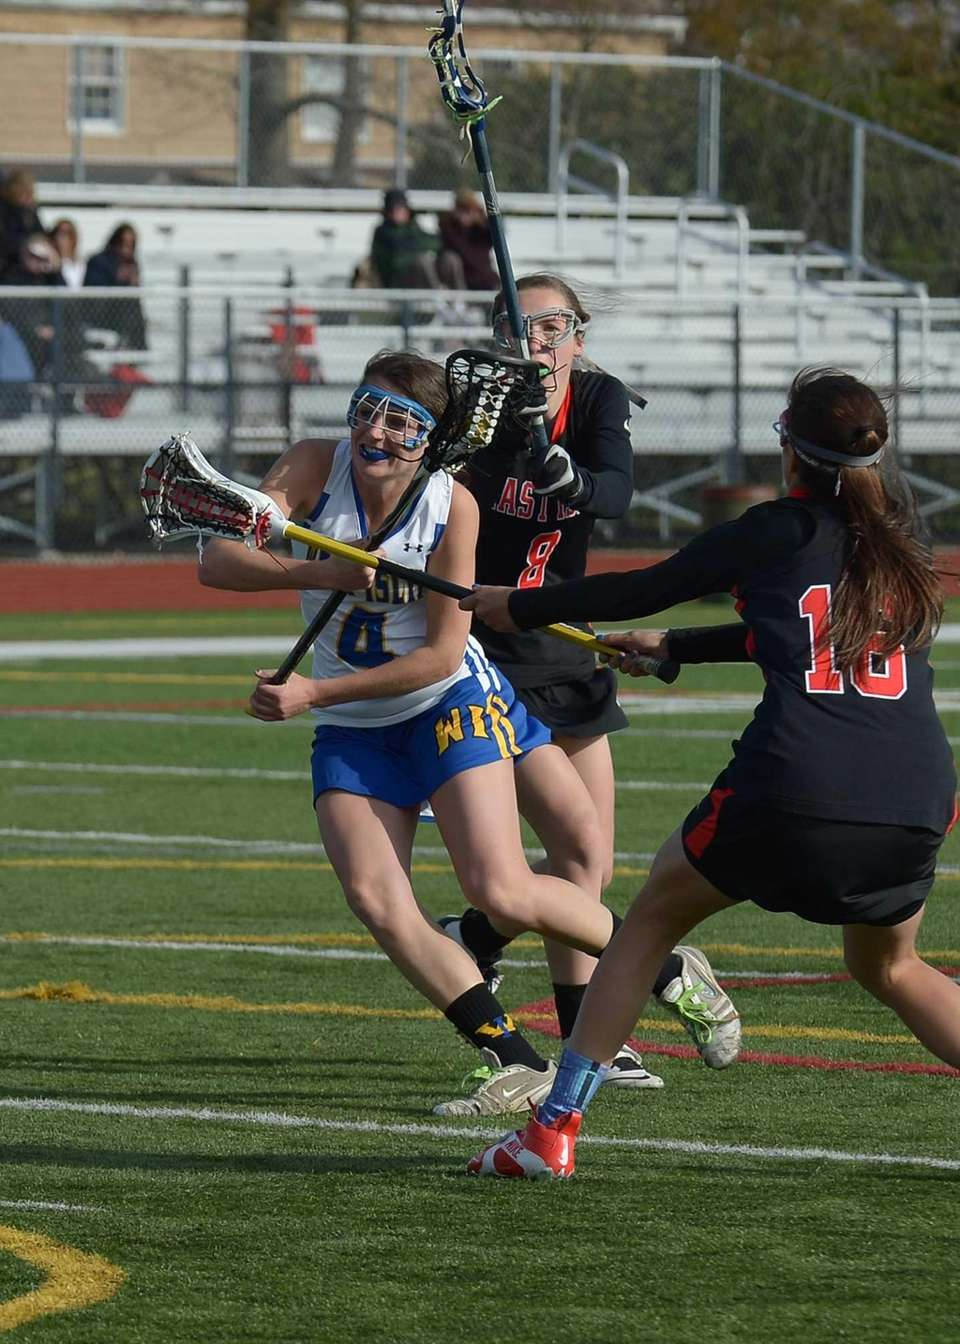 West Islip's Kate Beier (4) races towards the